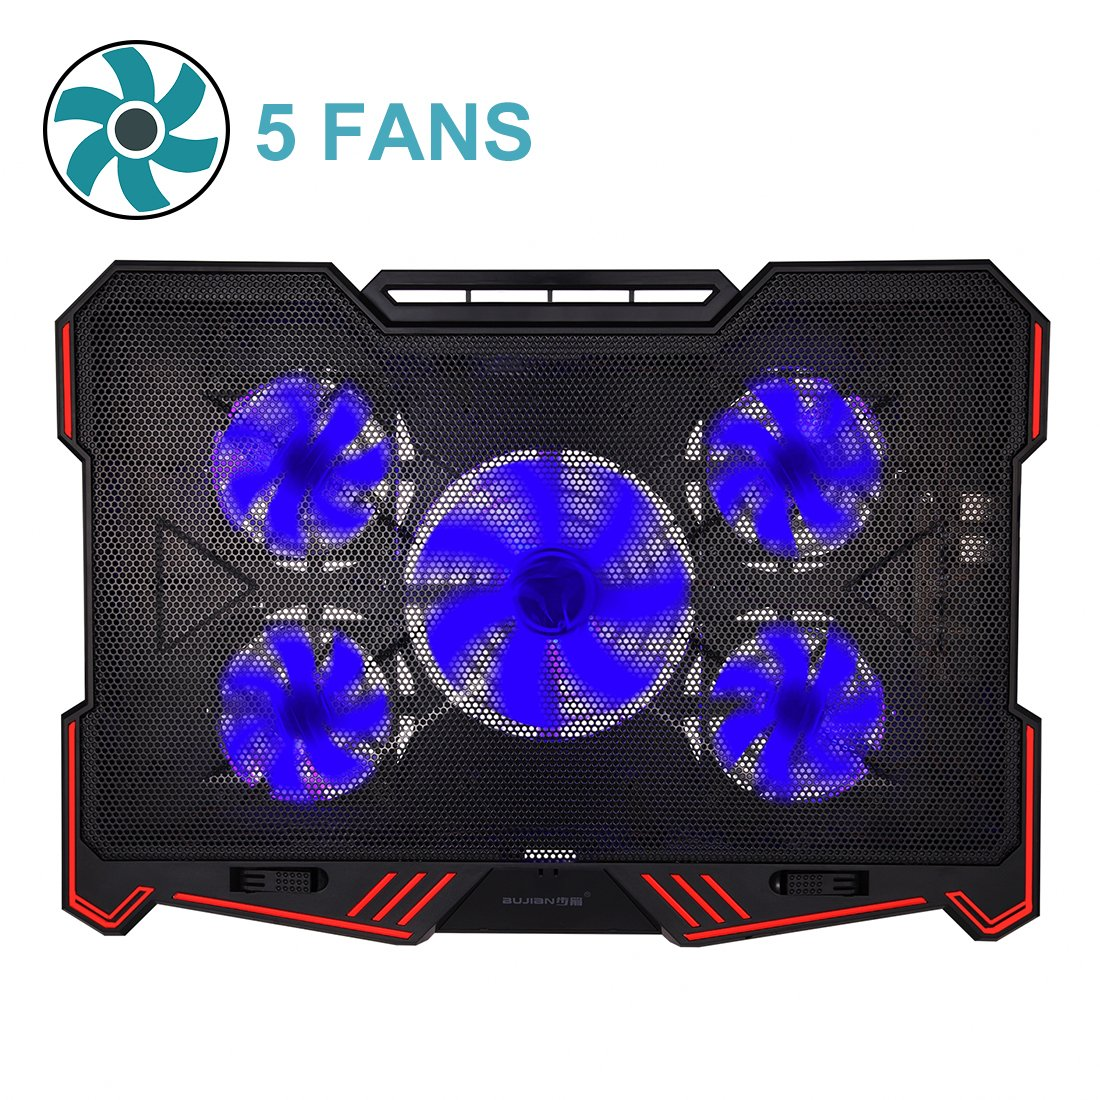 Laptop Cooling Pad BUJIAN 5 Ultra Quiet Fans and Red Led Lights with 13 Wind Speed (2600-5000RPM) and Ultra-Slim and Skid Proof Design for 12-15.6 Inch Laptop (S-X5) by BUJIAN (Image #1)